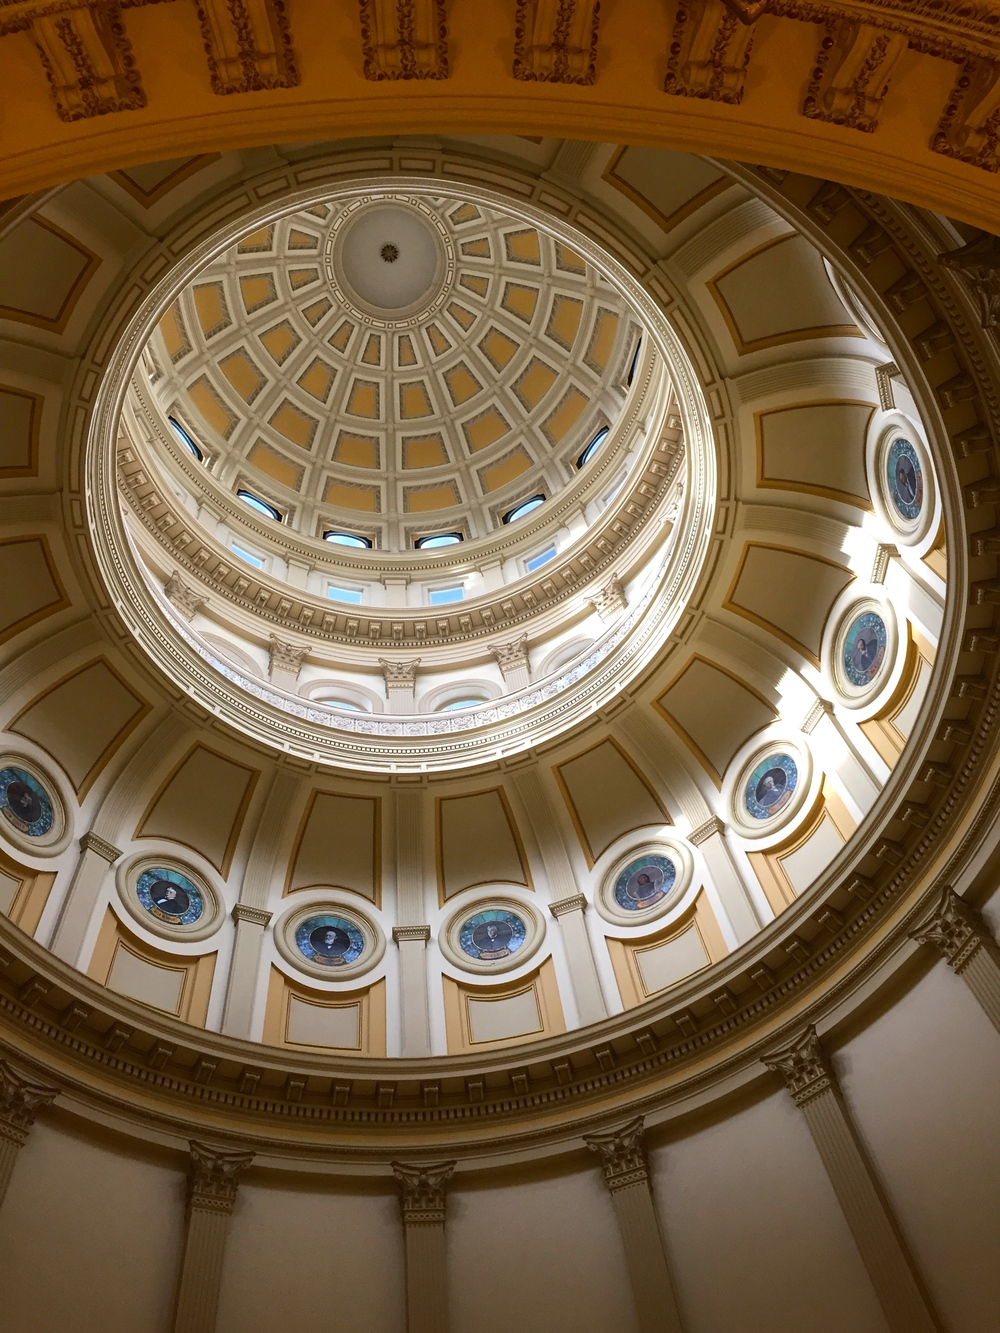 The layers of the Rotunda